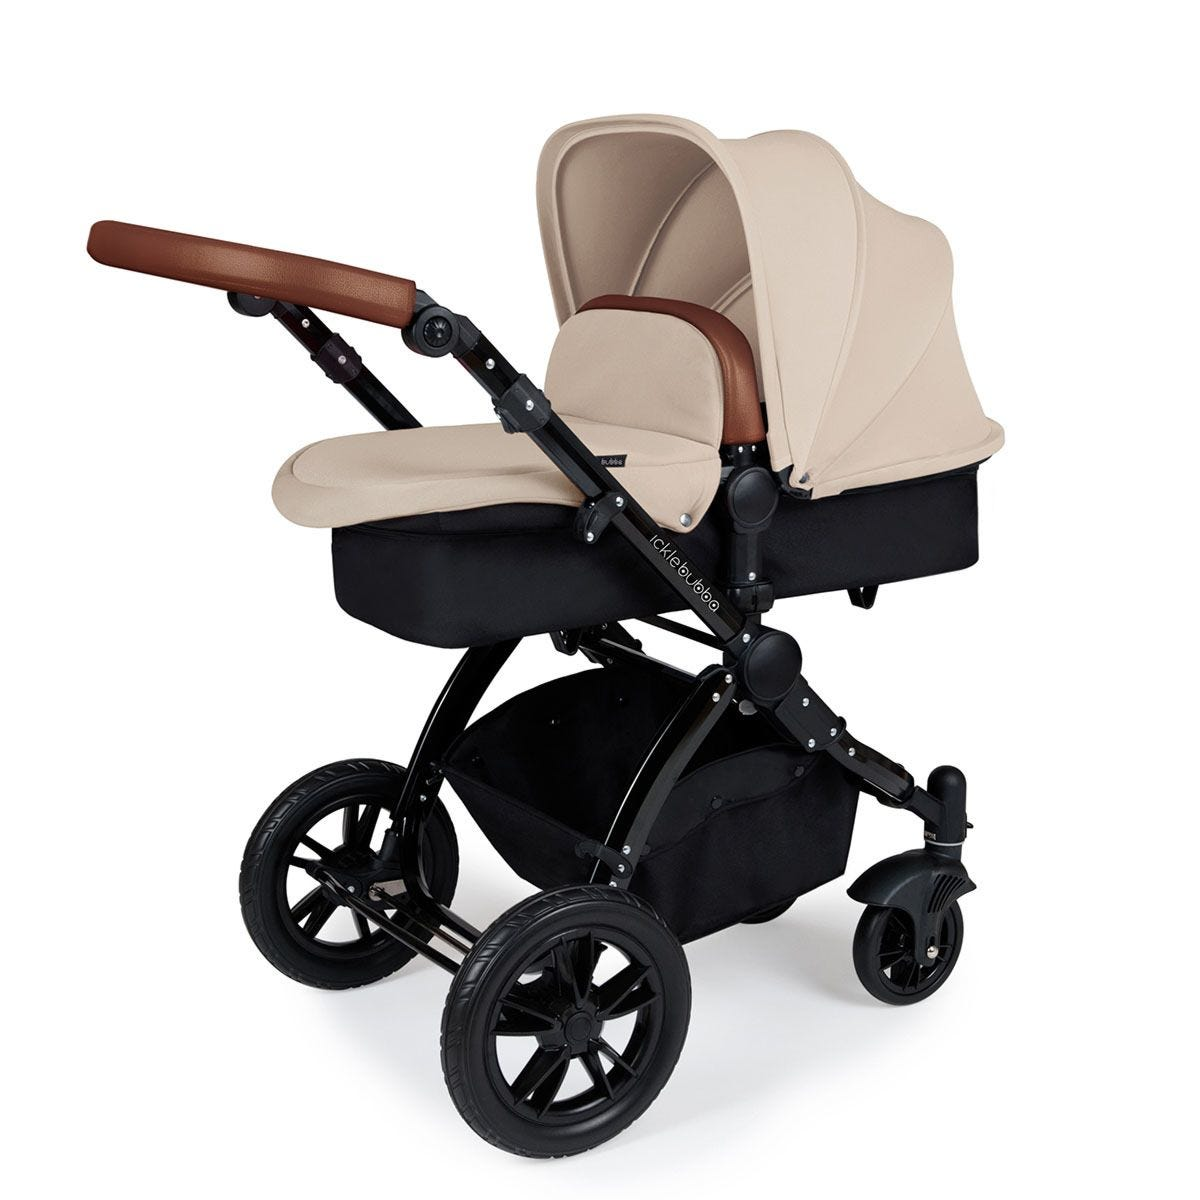 Ickle Bubba Stomp V3 2 in 1 Pushchair - Sand on Black with Tan Handles